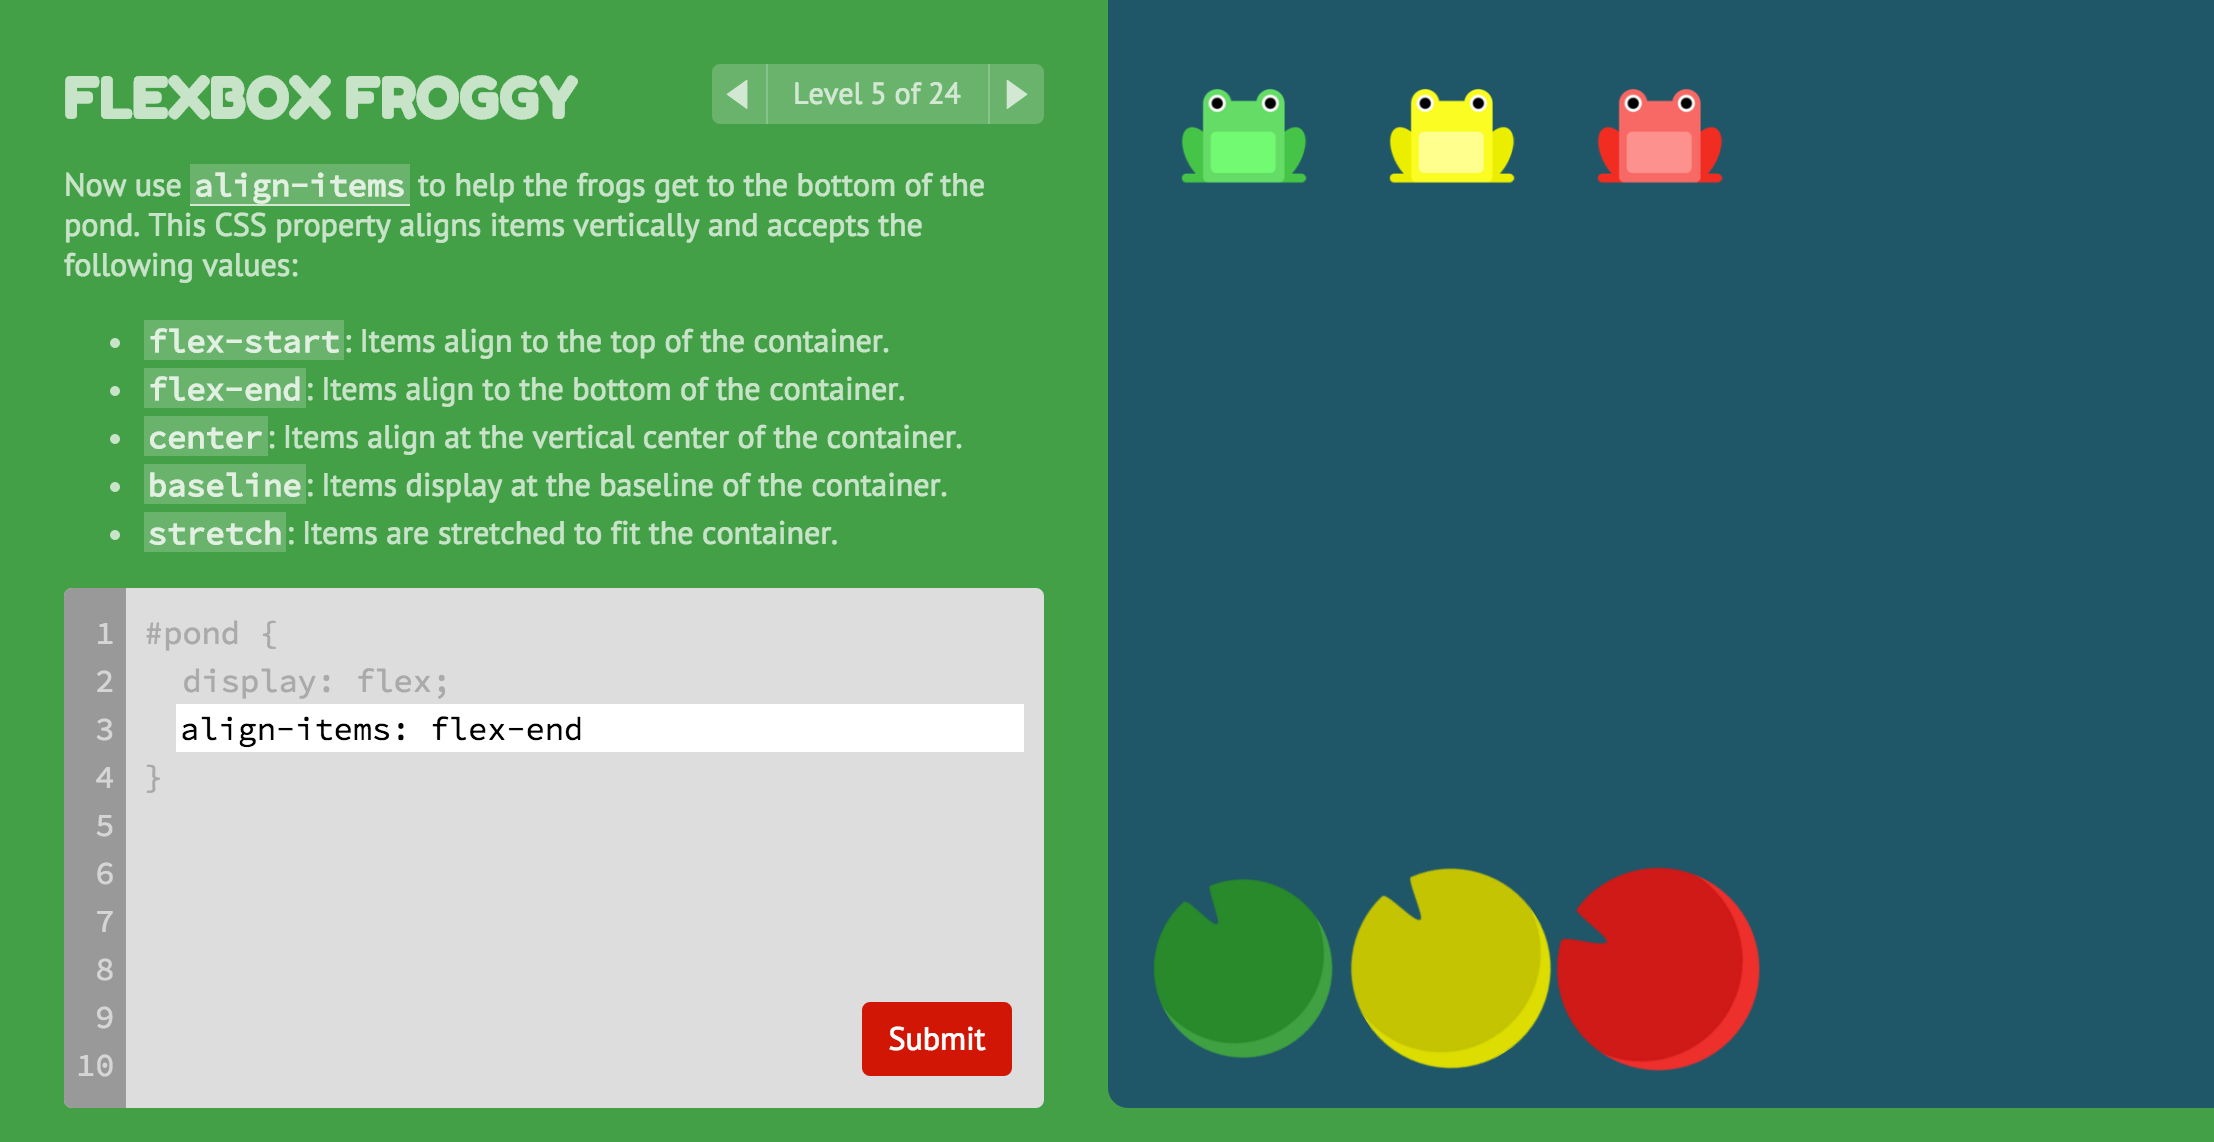 Flexbox Froggy - A game for learning CSS flexbox